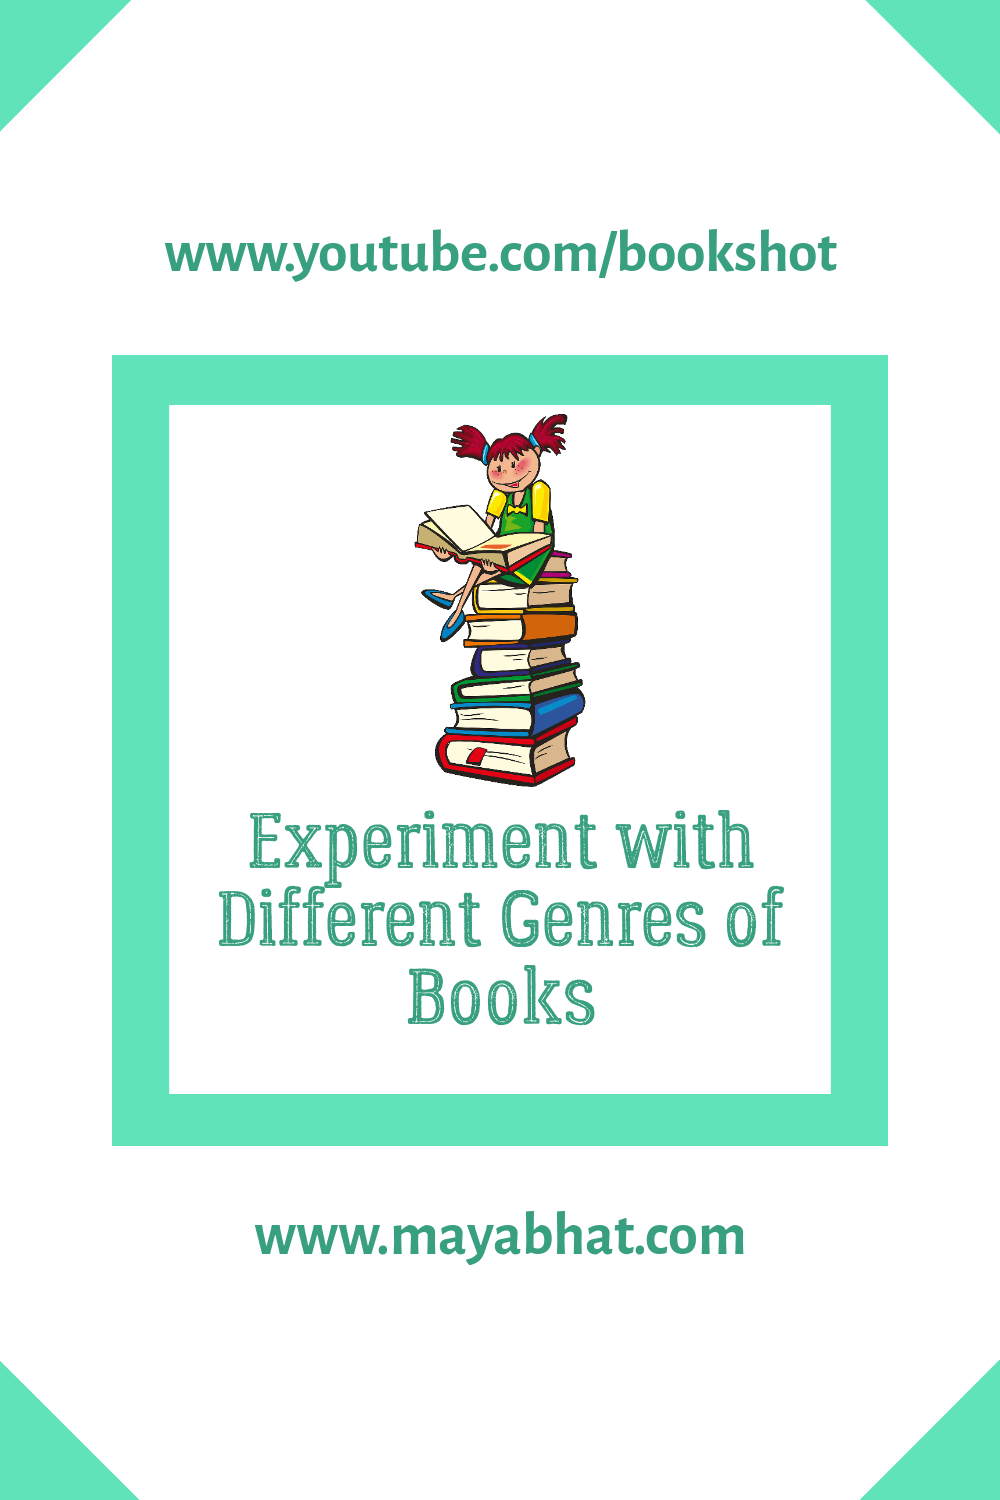 Experiment with different genres of books